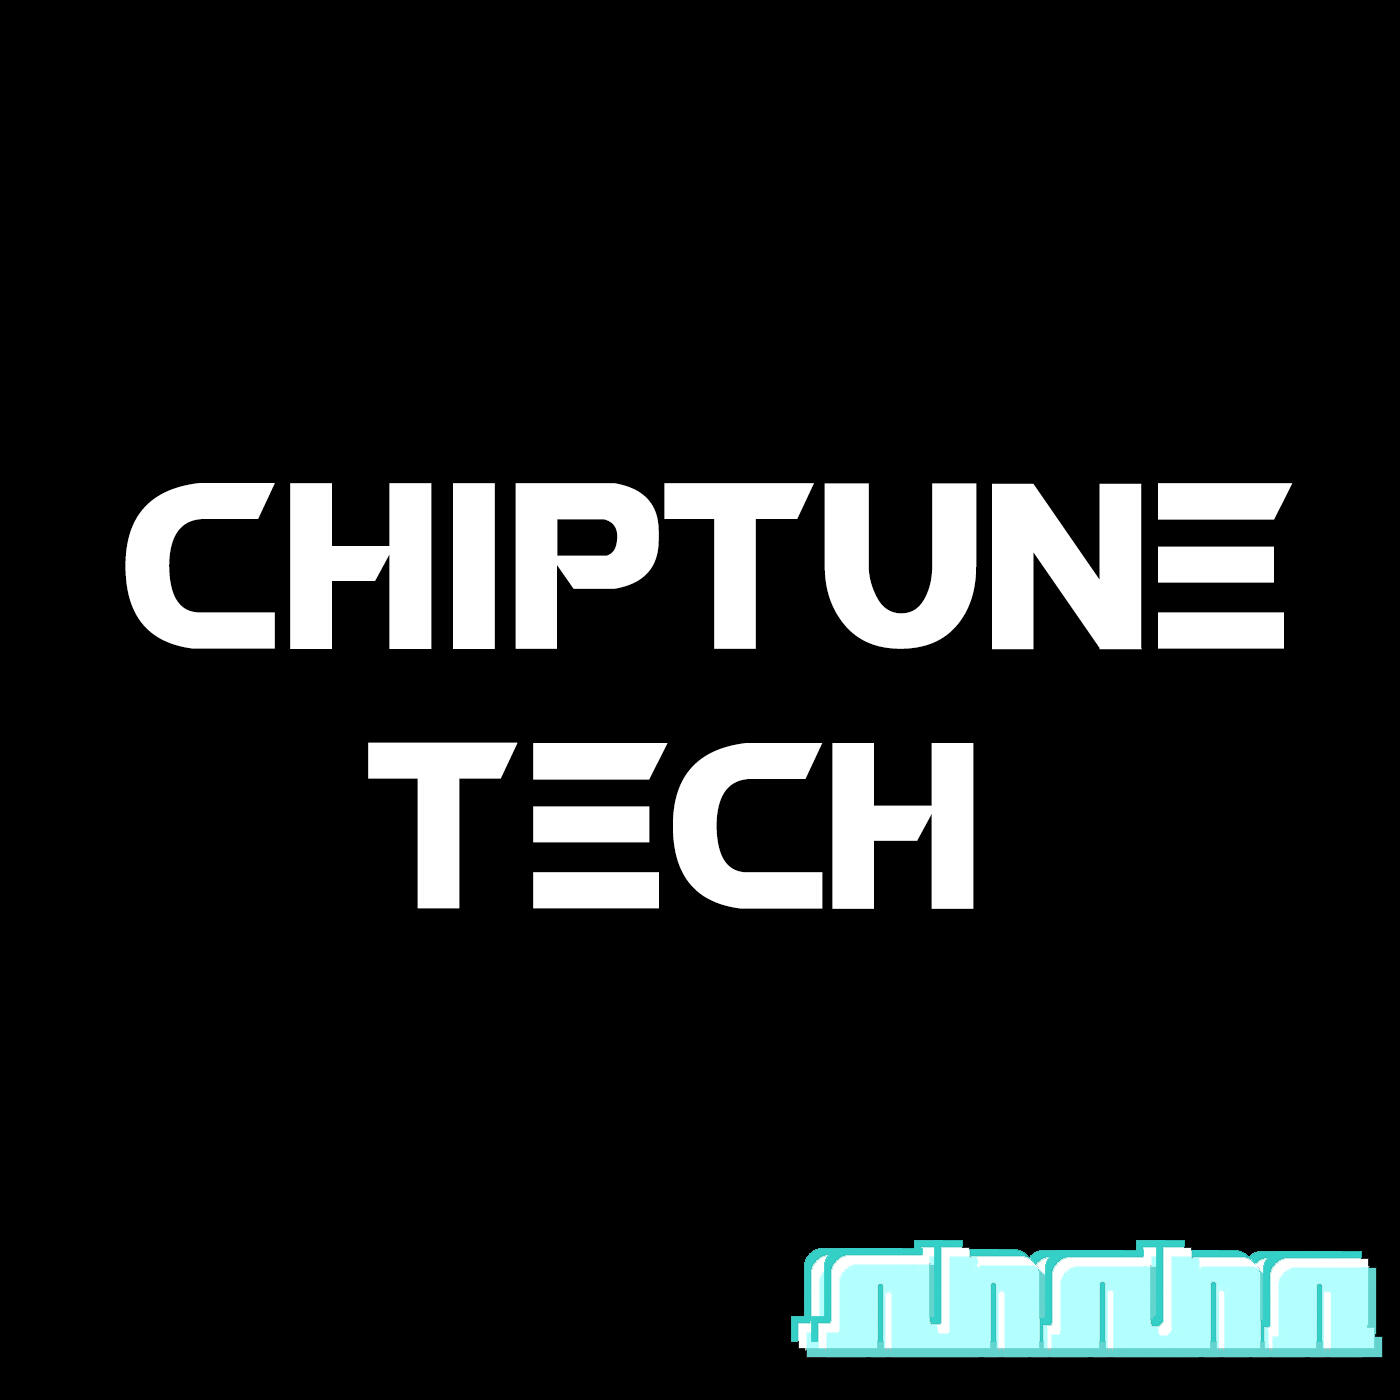 Listen to the Chiptune Tech Episode - MEGA Episode 8